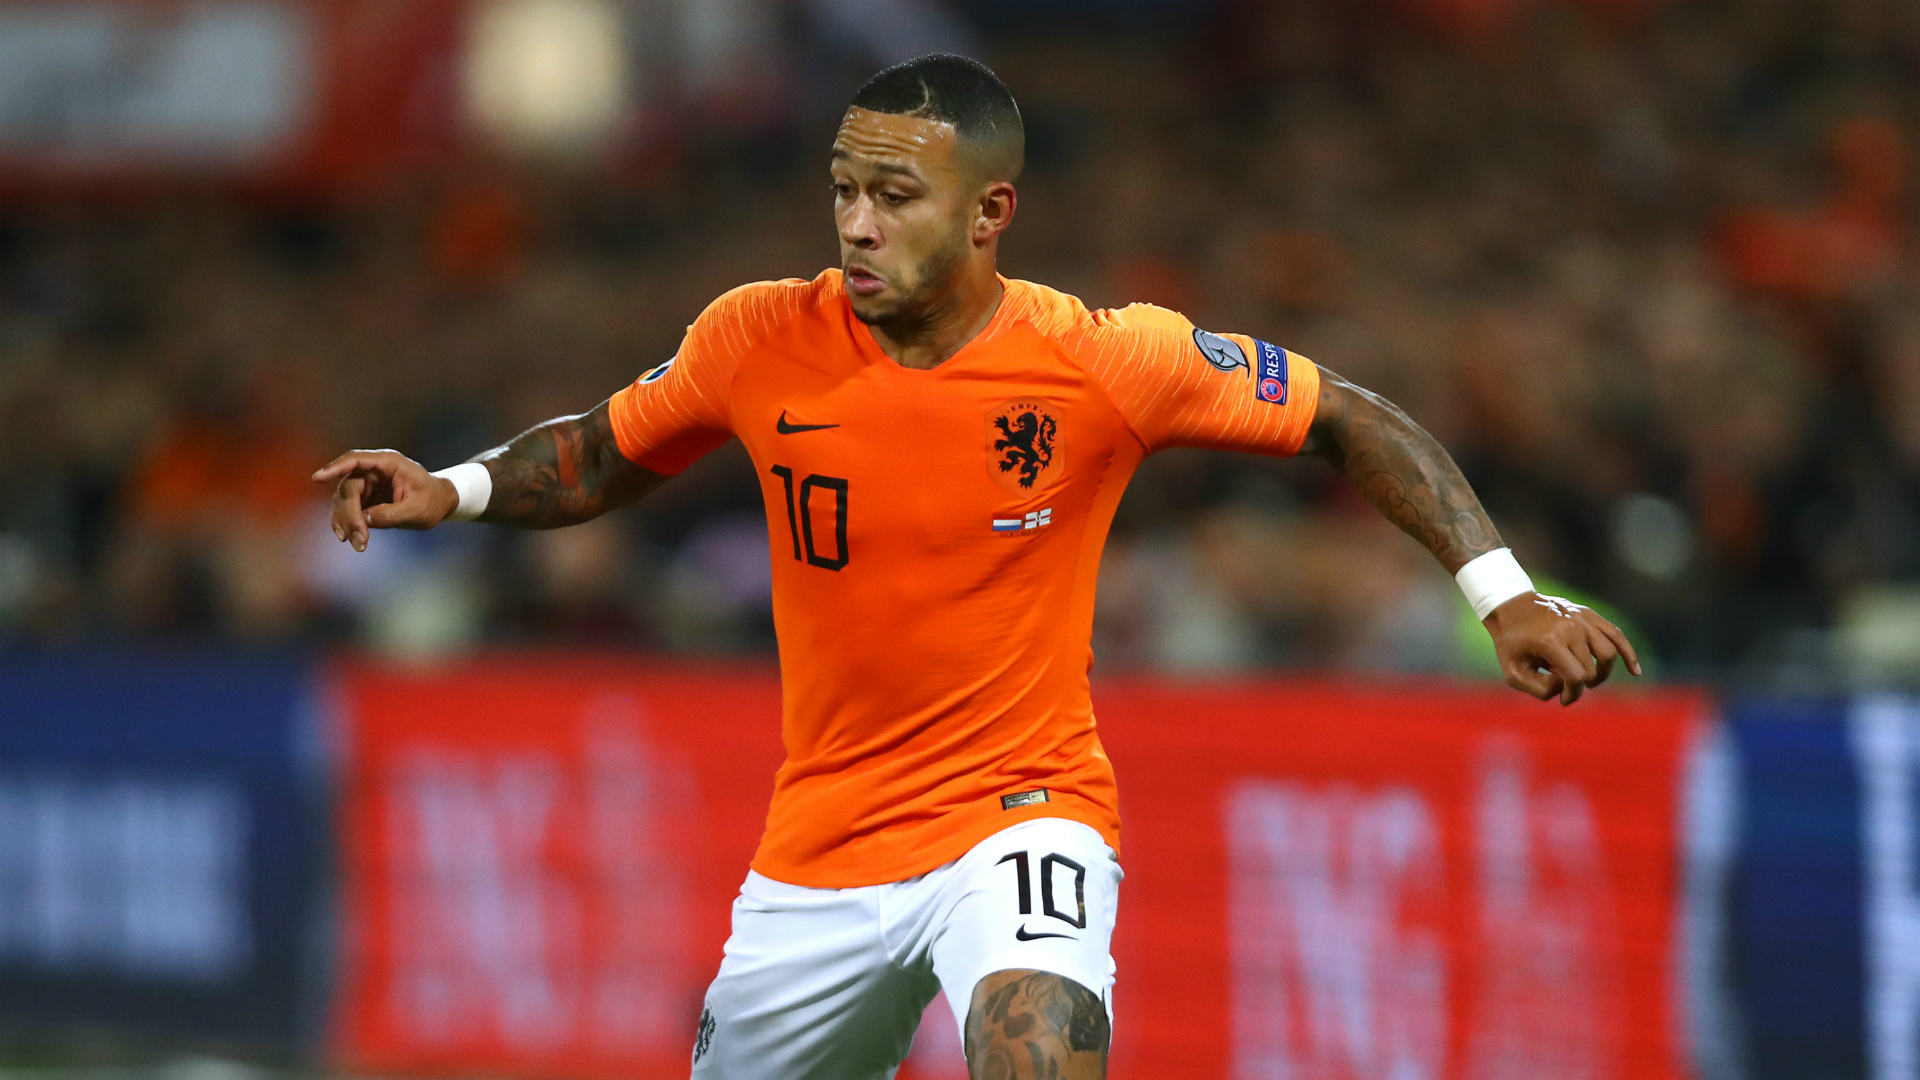 Depay leaving Lyon 'would be better' for Netherlands, says Koeman